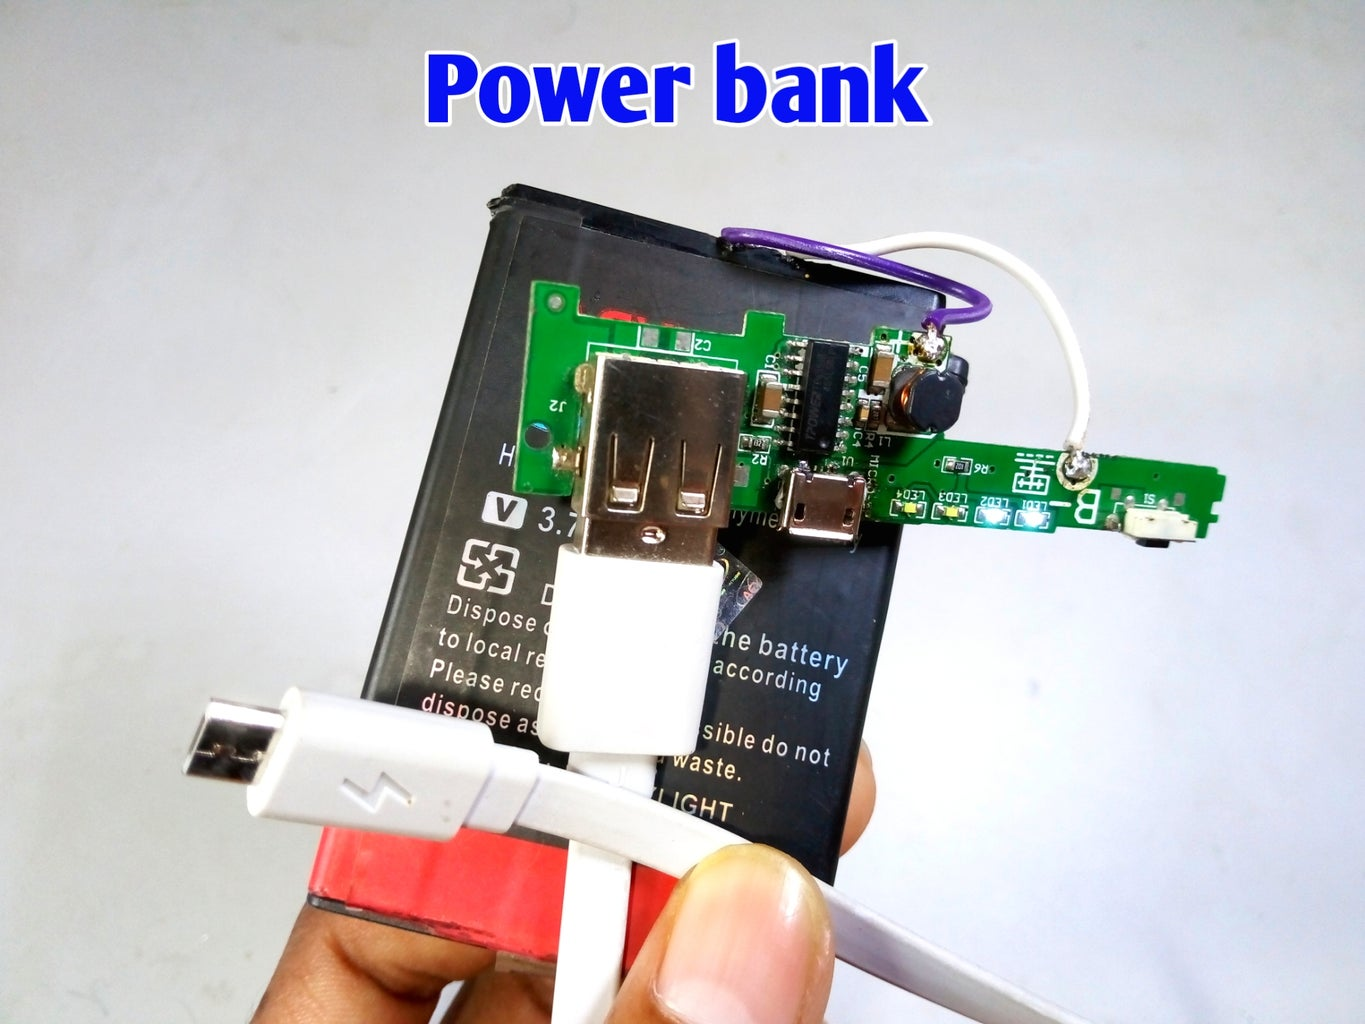 How to Make Power Bank at Home